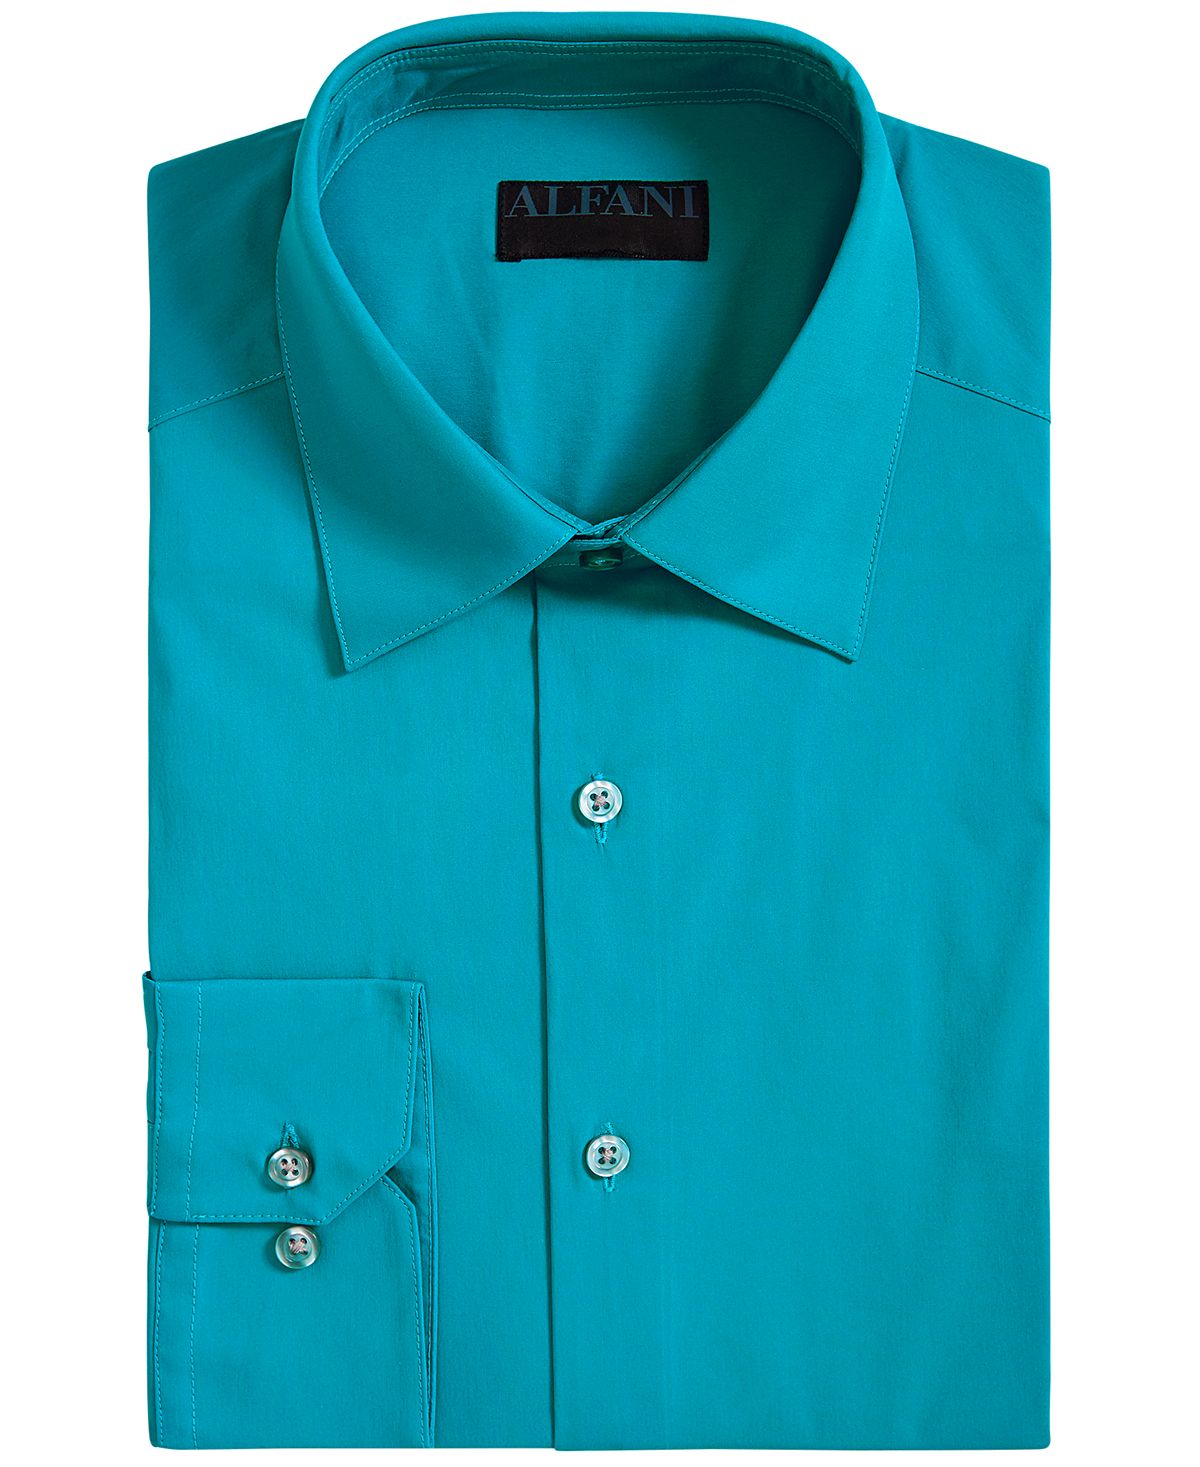 Alfani Alfatech By Slim-fit Performance Stretch Easy-care Solid Dress Shirt Aqua